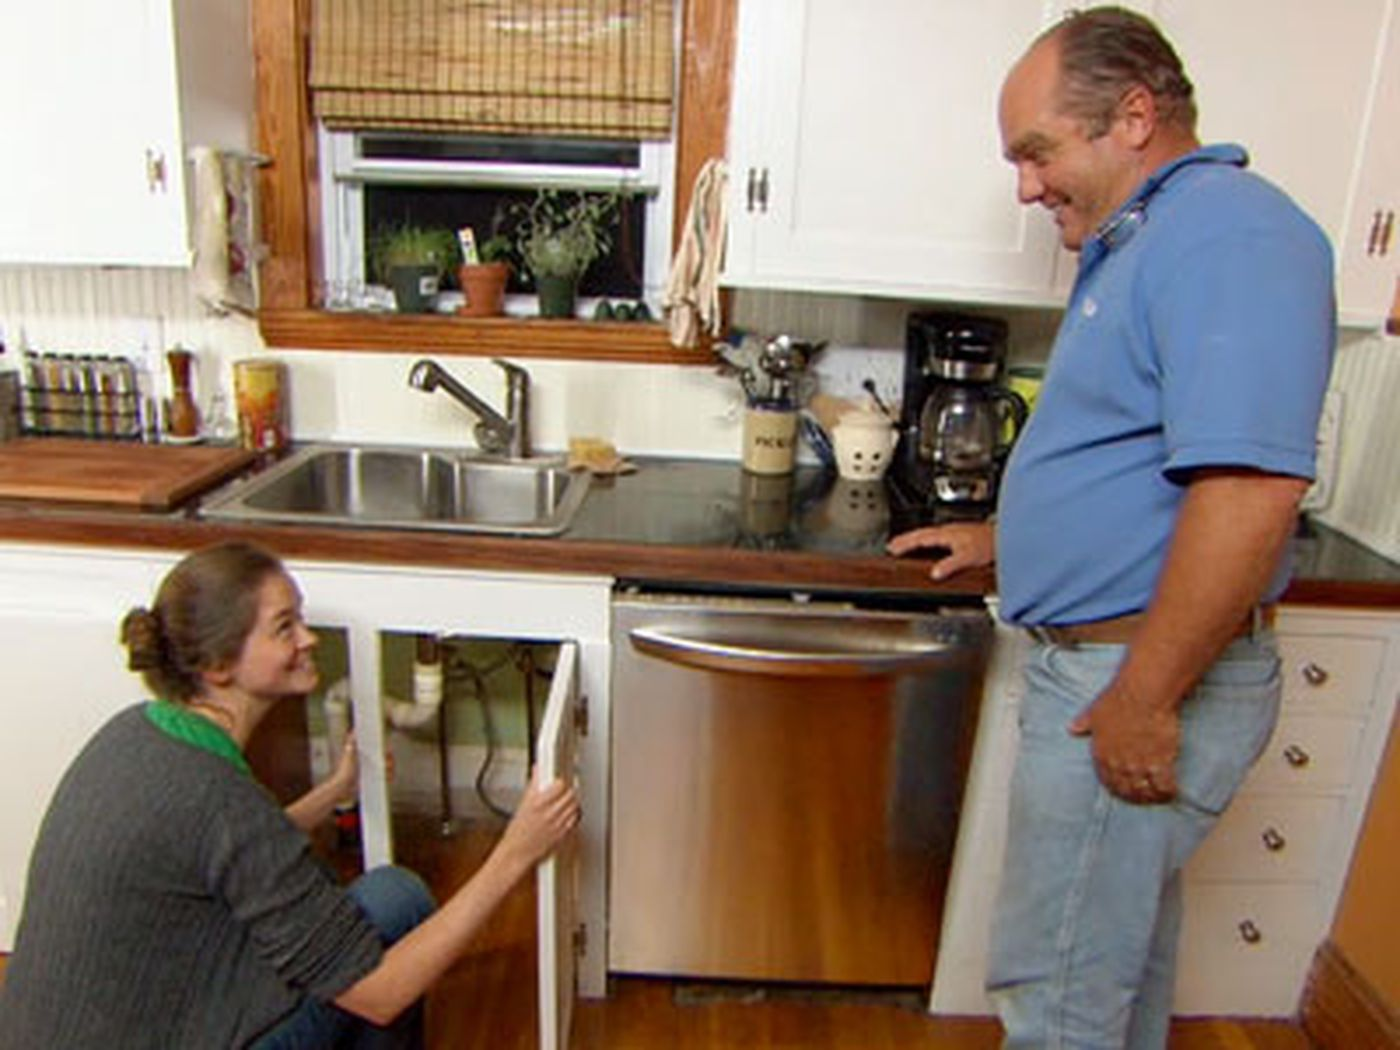 How To Install A New Dishwasher To A Kitchen This Old House